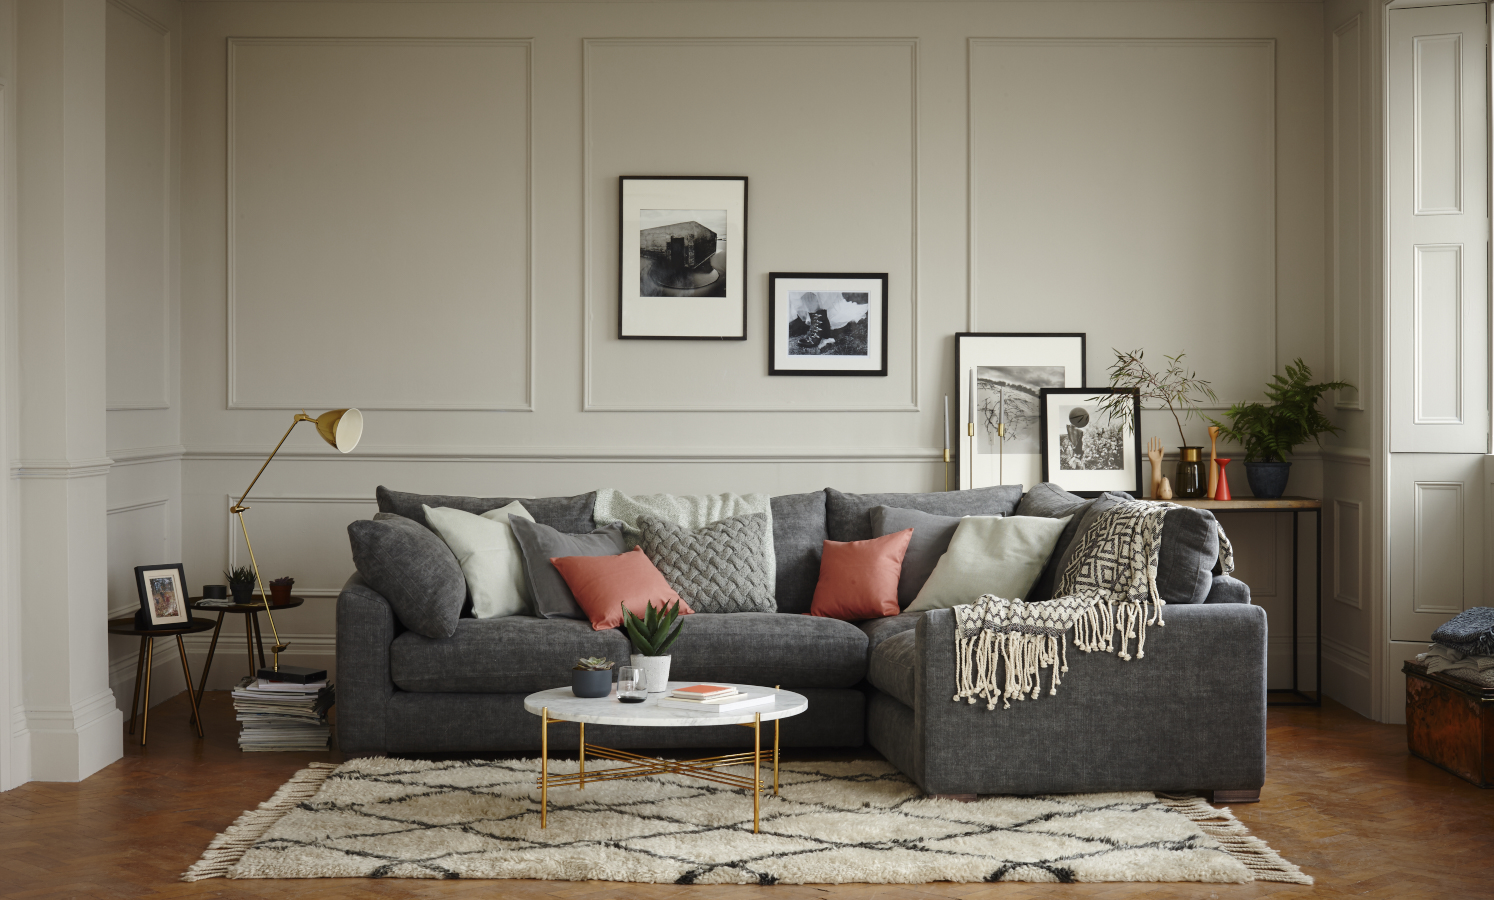 charcoal grey sofa accessorised with blush pink and grey cushions, marble coffee table and black and white prints. Interior photography by London based photographer Joanna Henderson